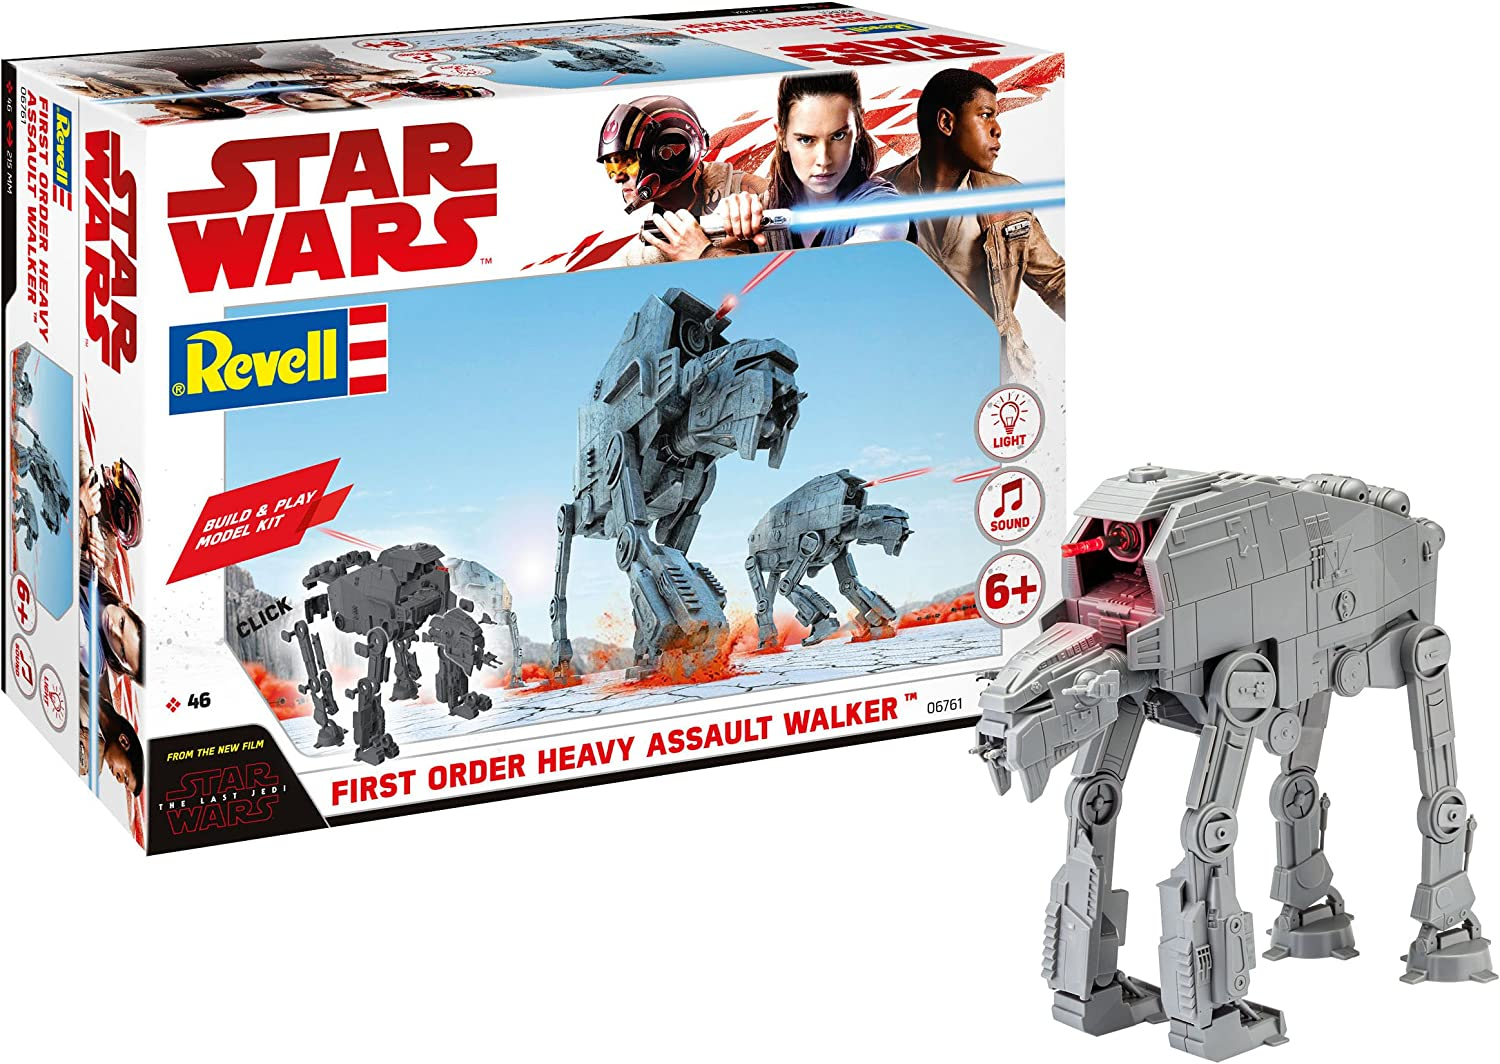 With /& Revell 06761 Star Wars Episode VIII Build /& Play Heavy Assault Walker